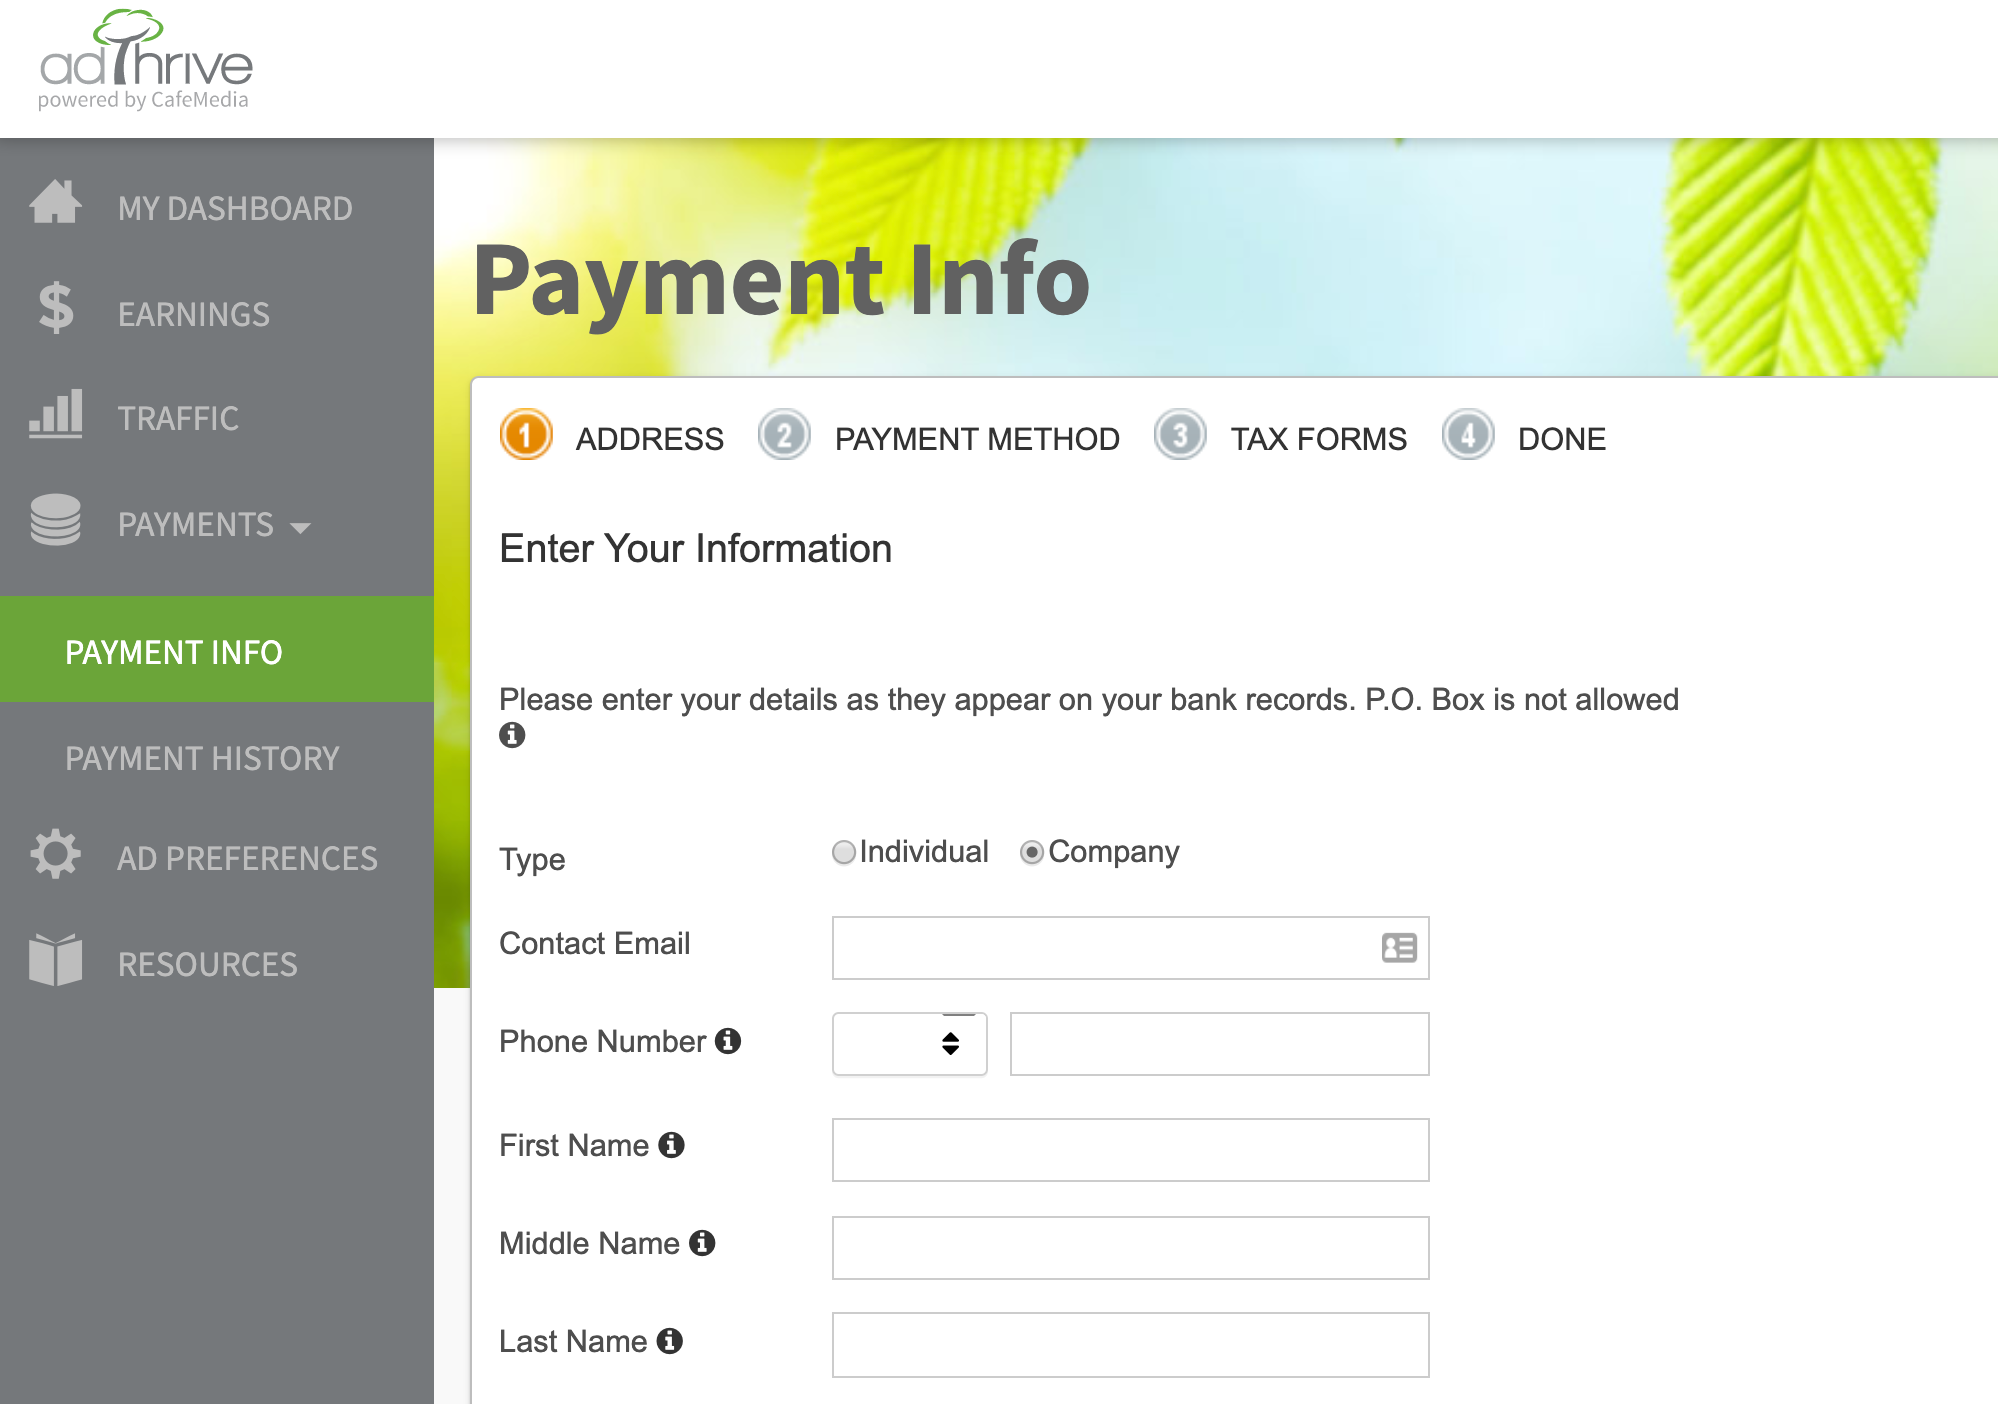 AdThrive_payment_info.png